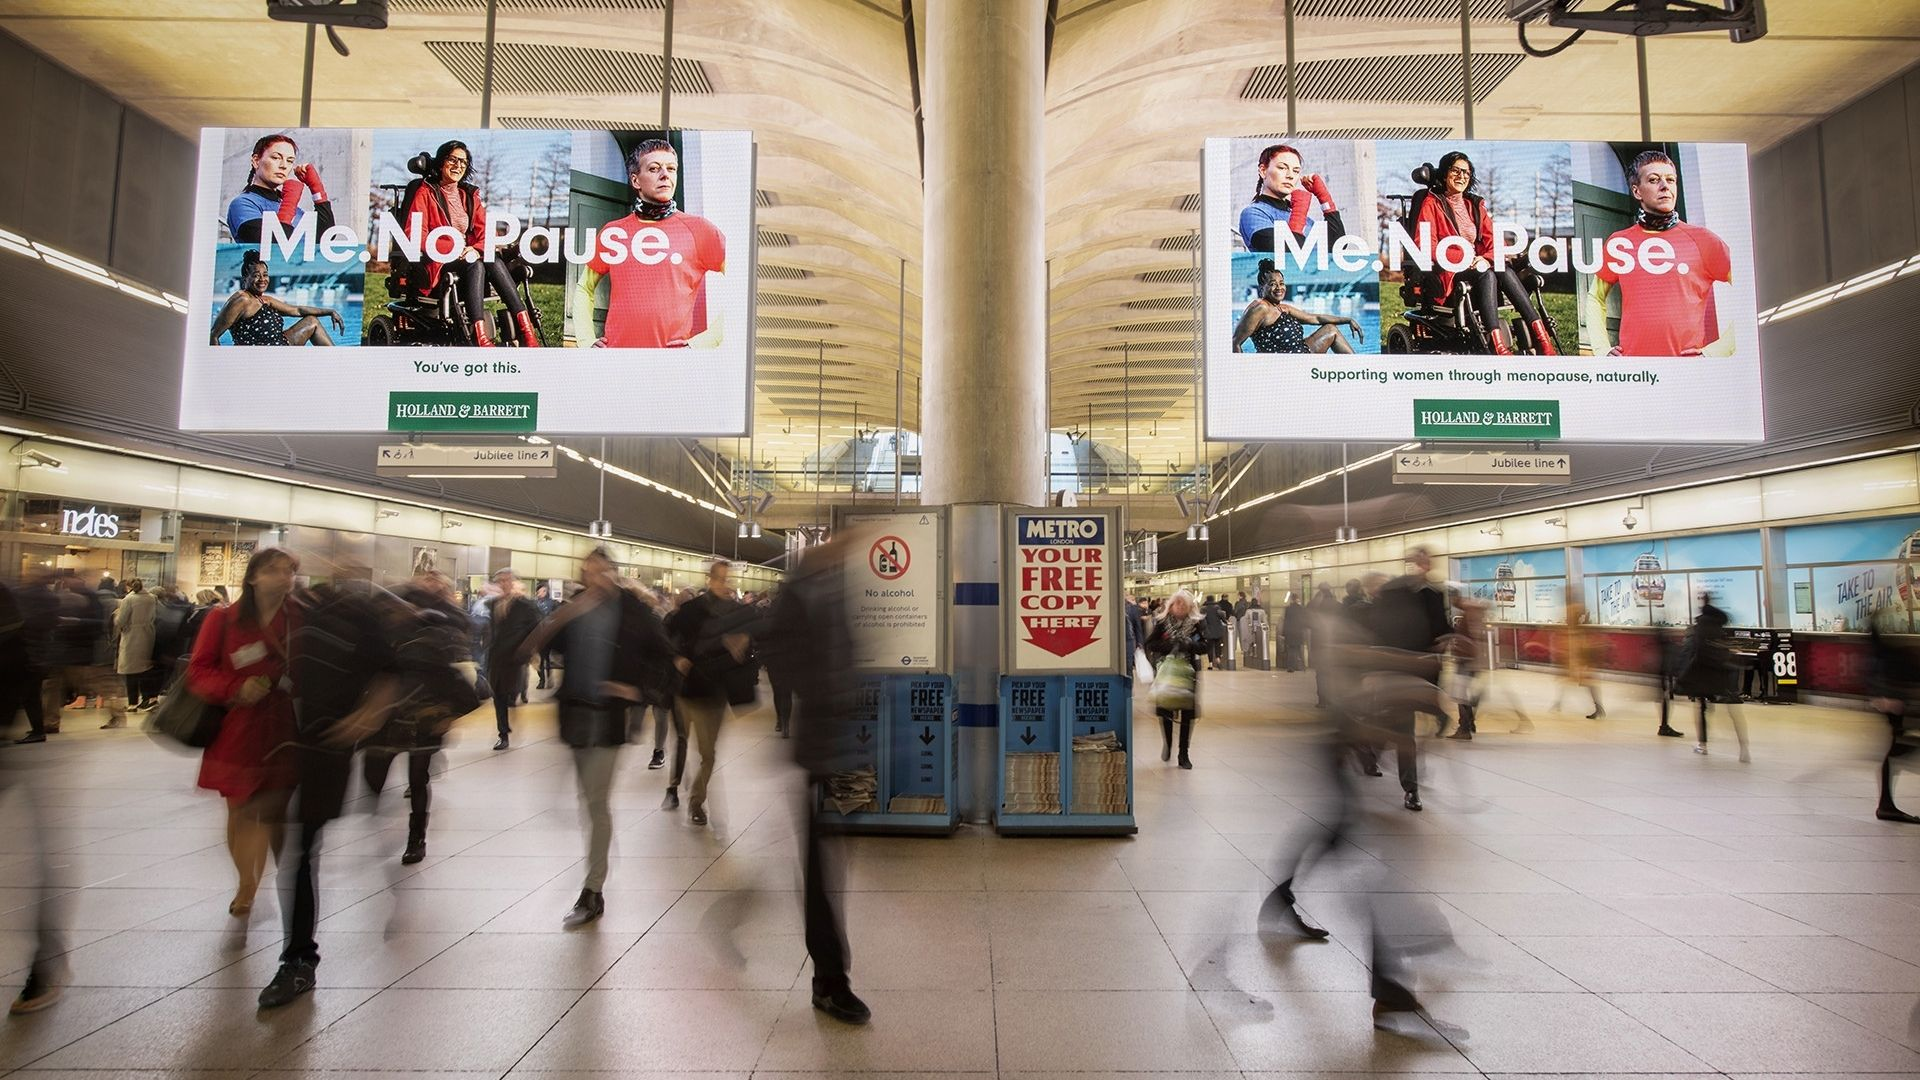 Image of people walking in London Underground tube station with Holland & Barrett adverts hanging from the ceiling.